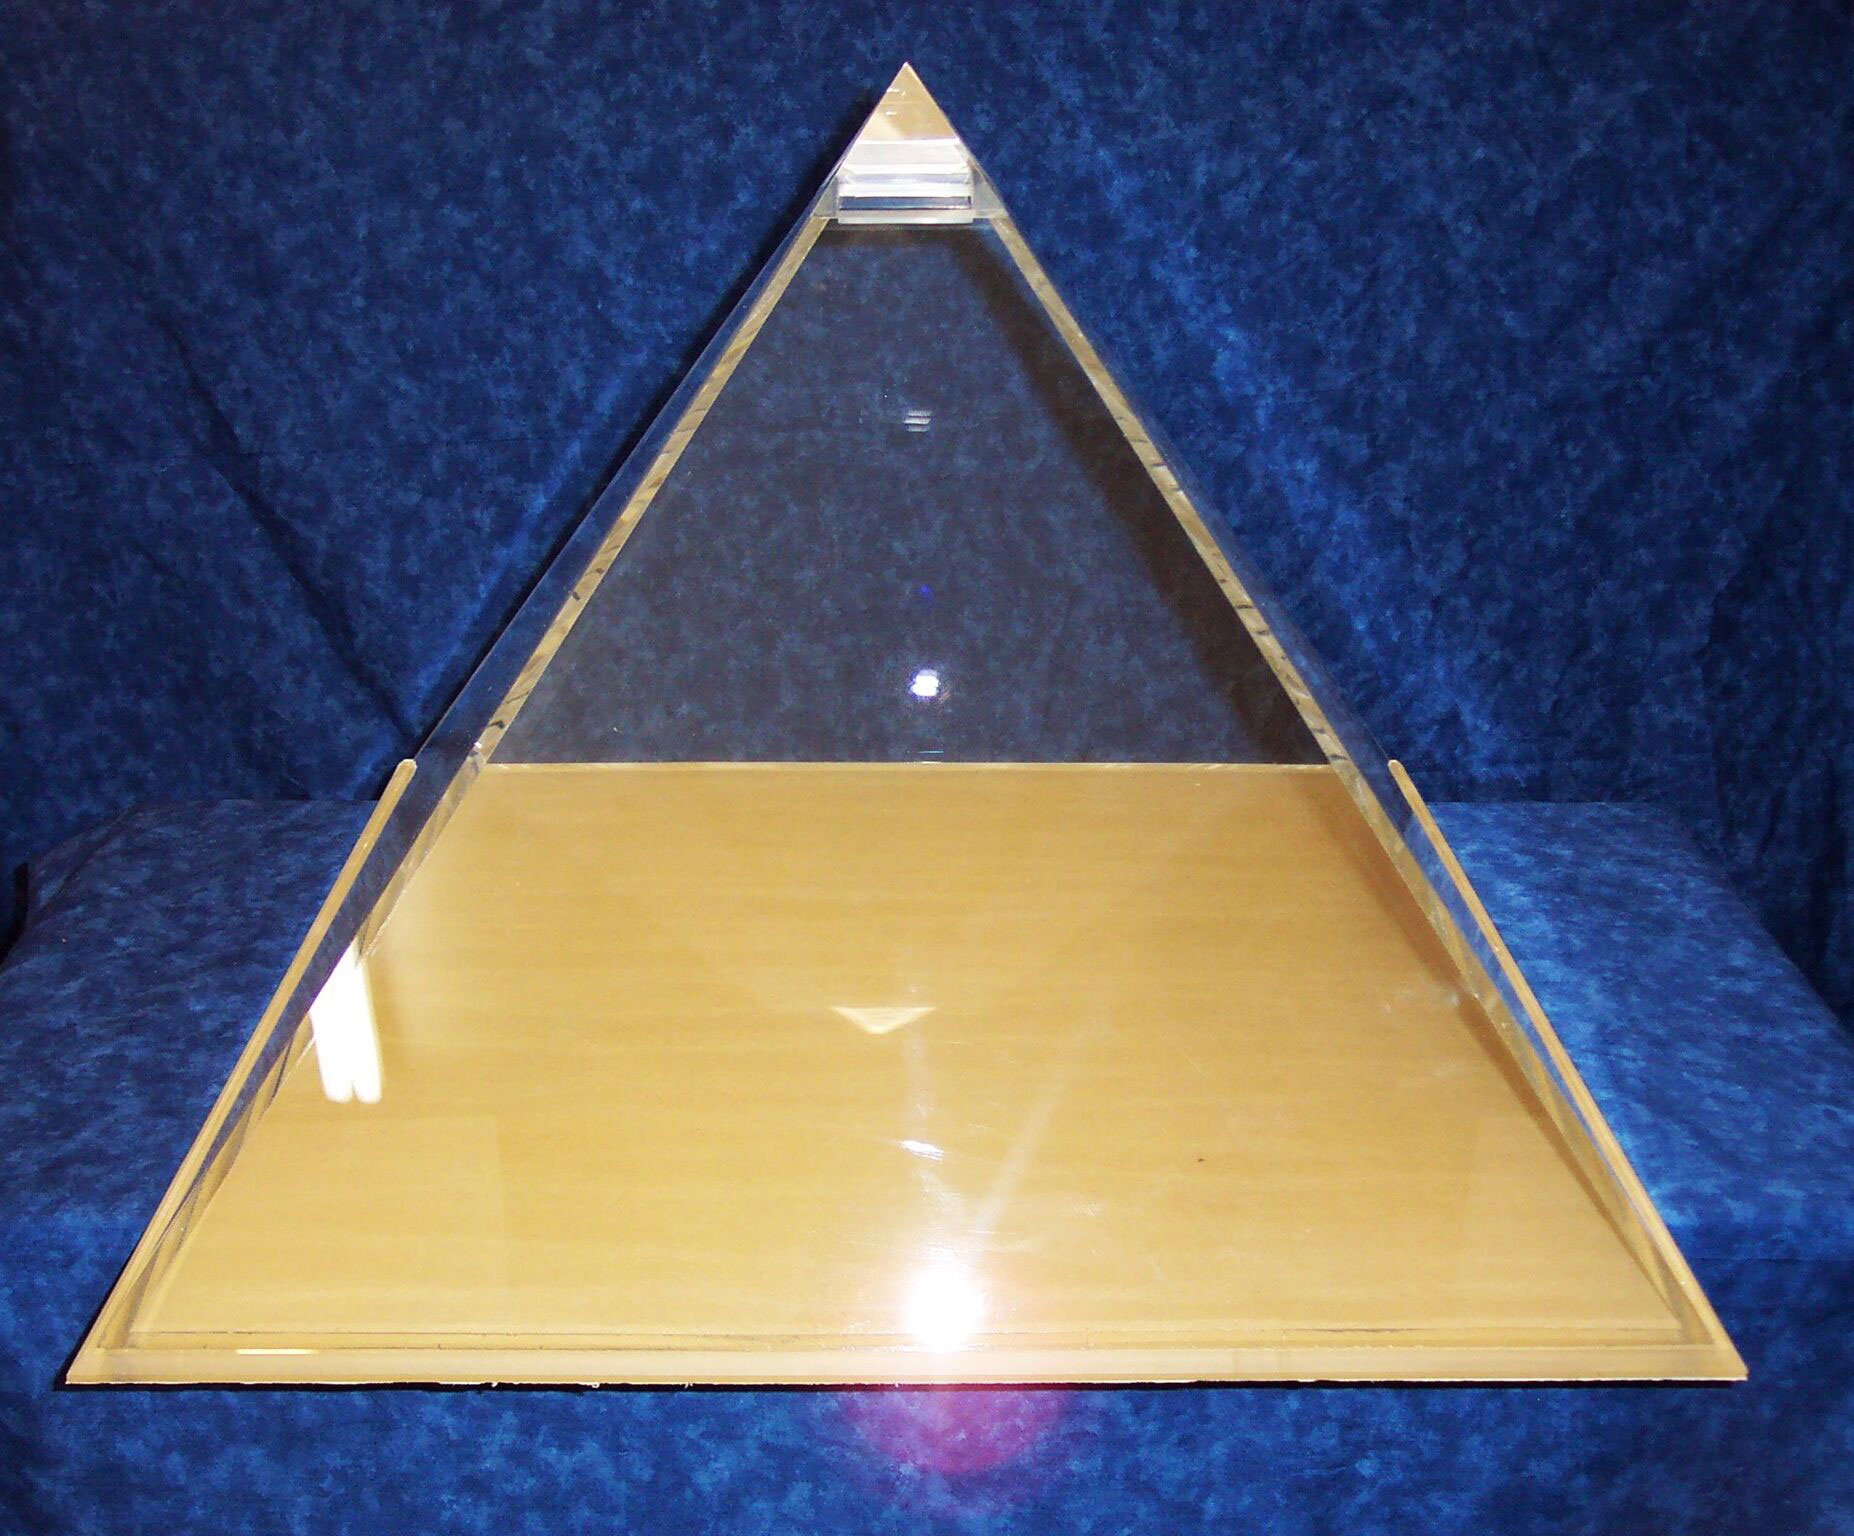 Hollow Plastic Pyramid Display